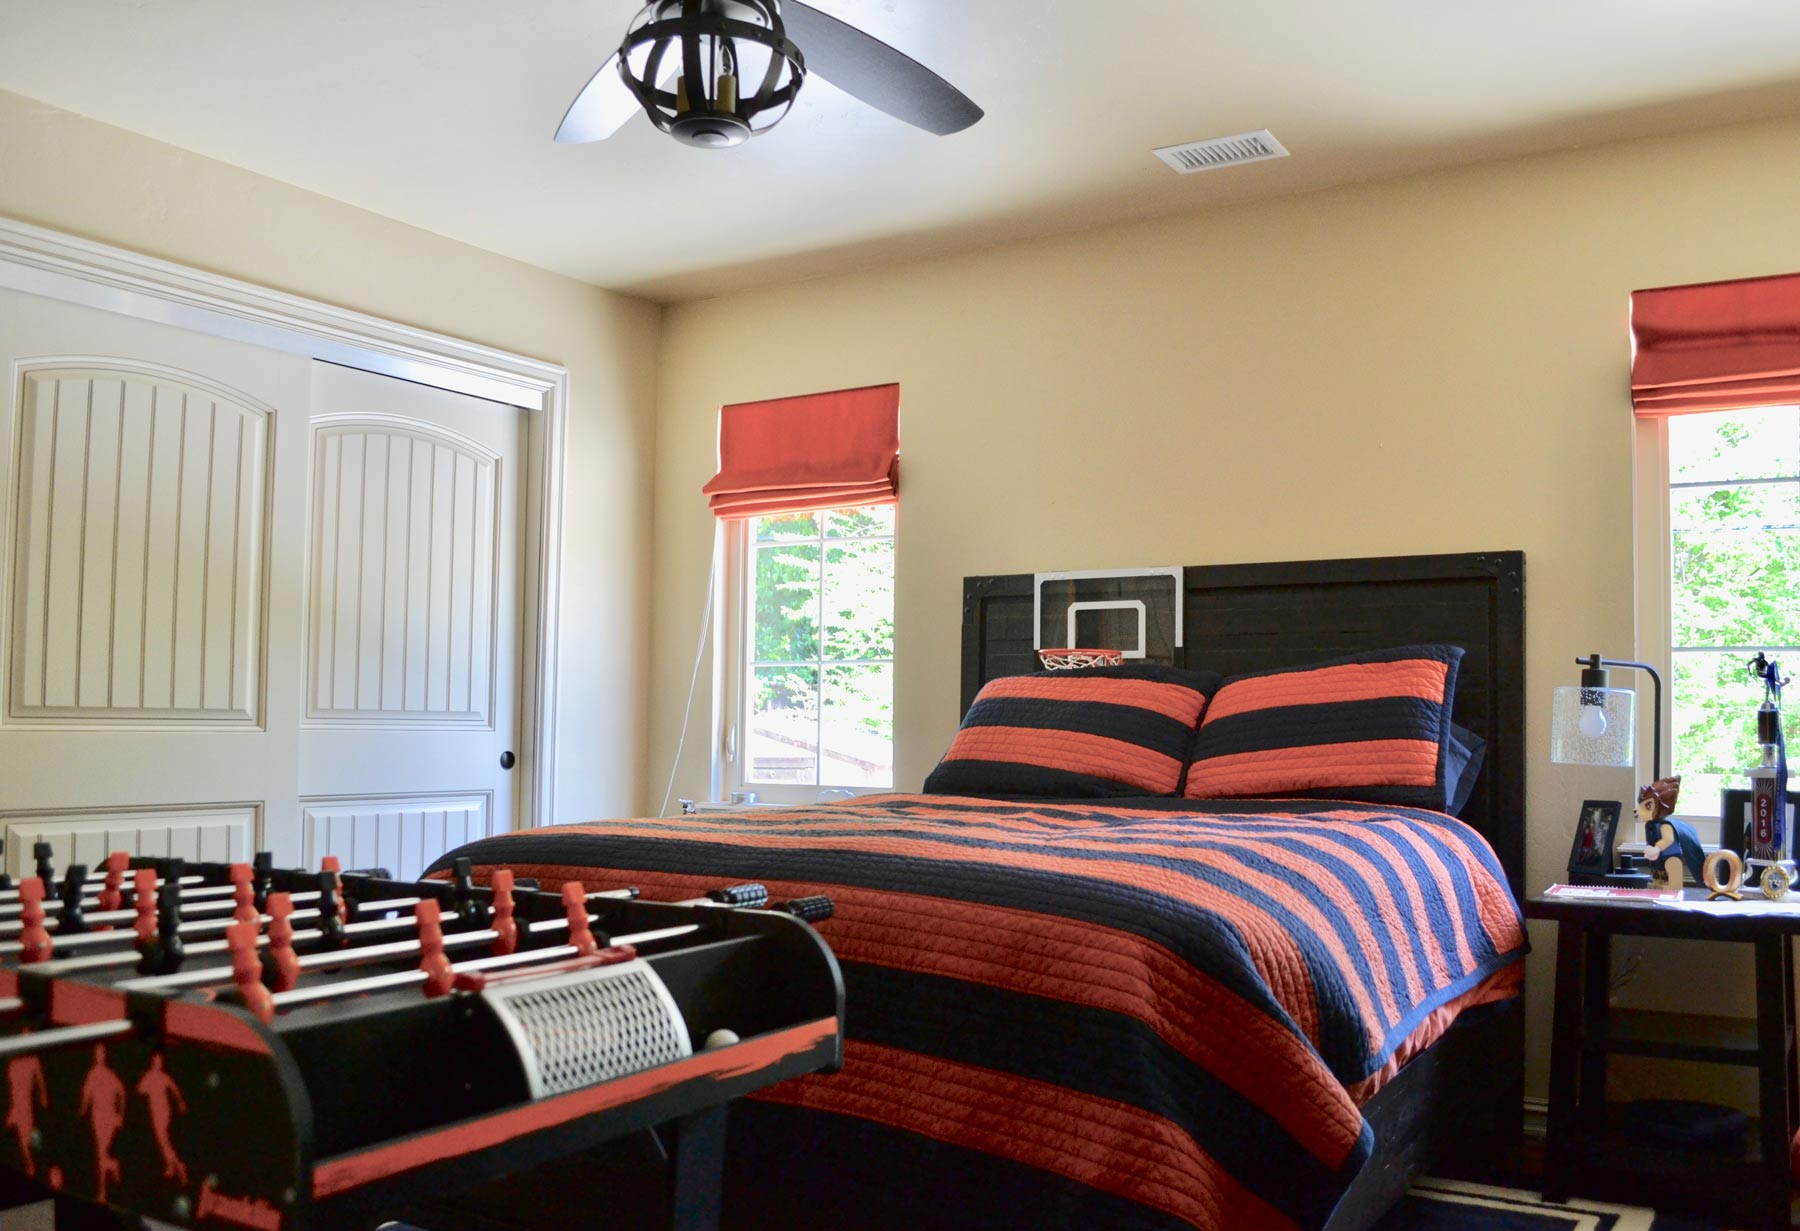 Hereu0027s A Look At Some Of The Master Suite And Bedroom Remodels Weu0027ve Taken  From Average To Absolutely Stunning. A Master Suite Bedroom Remodel May Be  Just ...